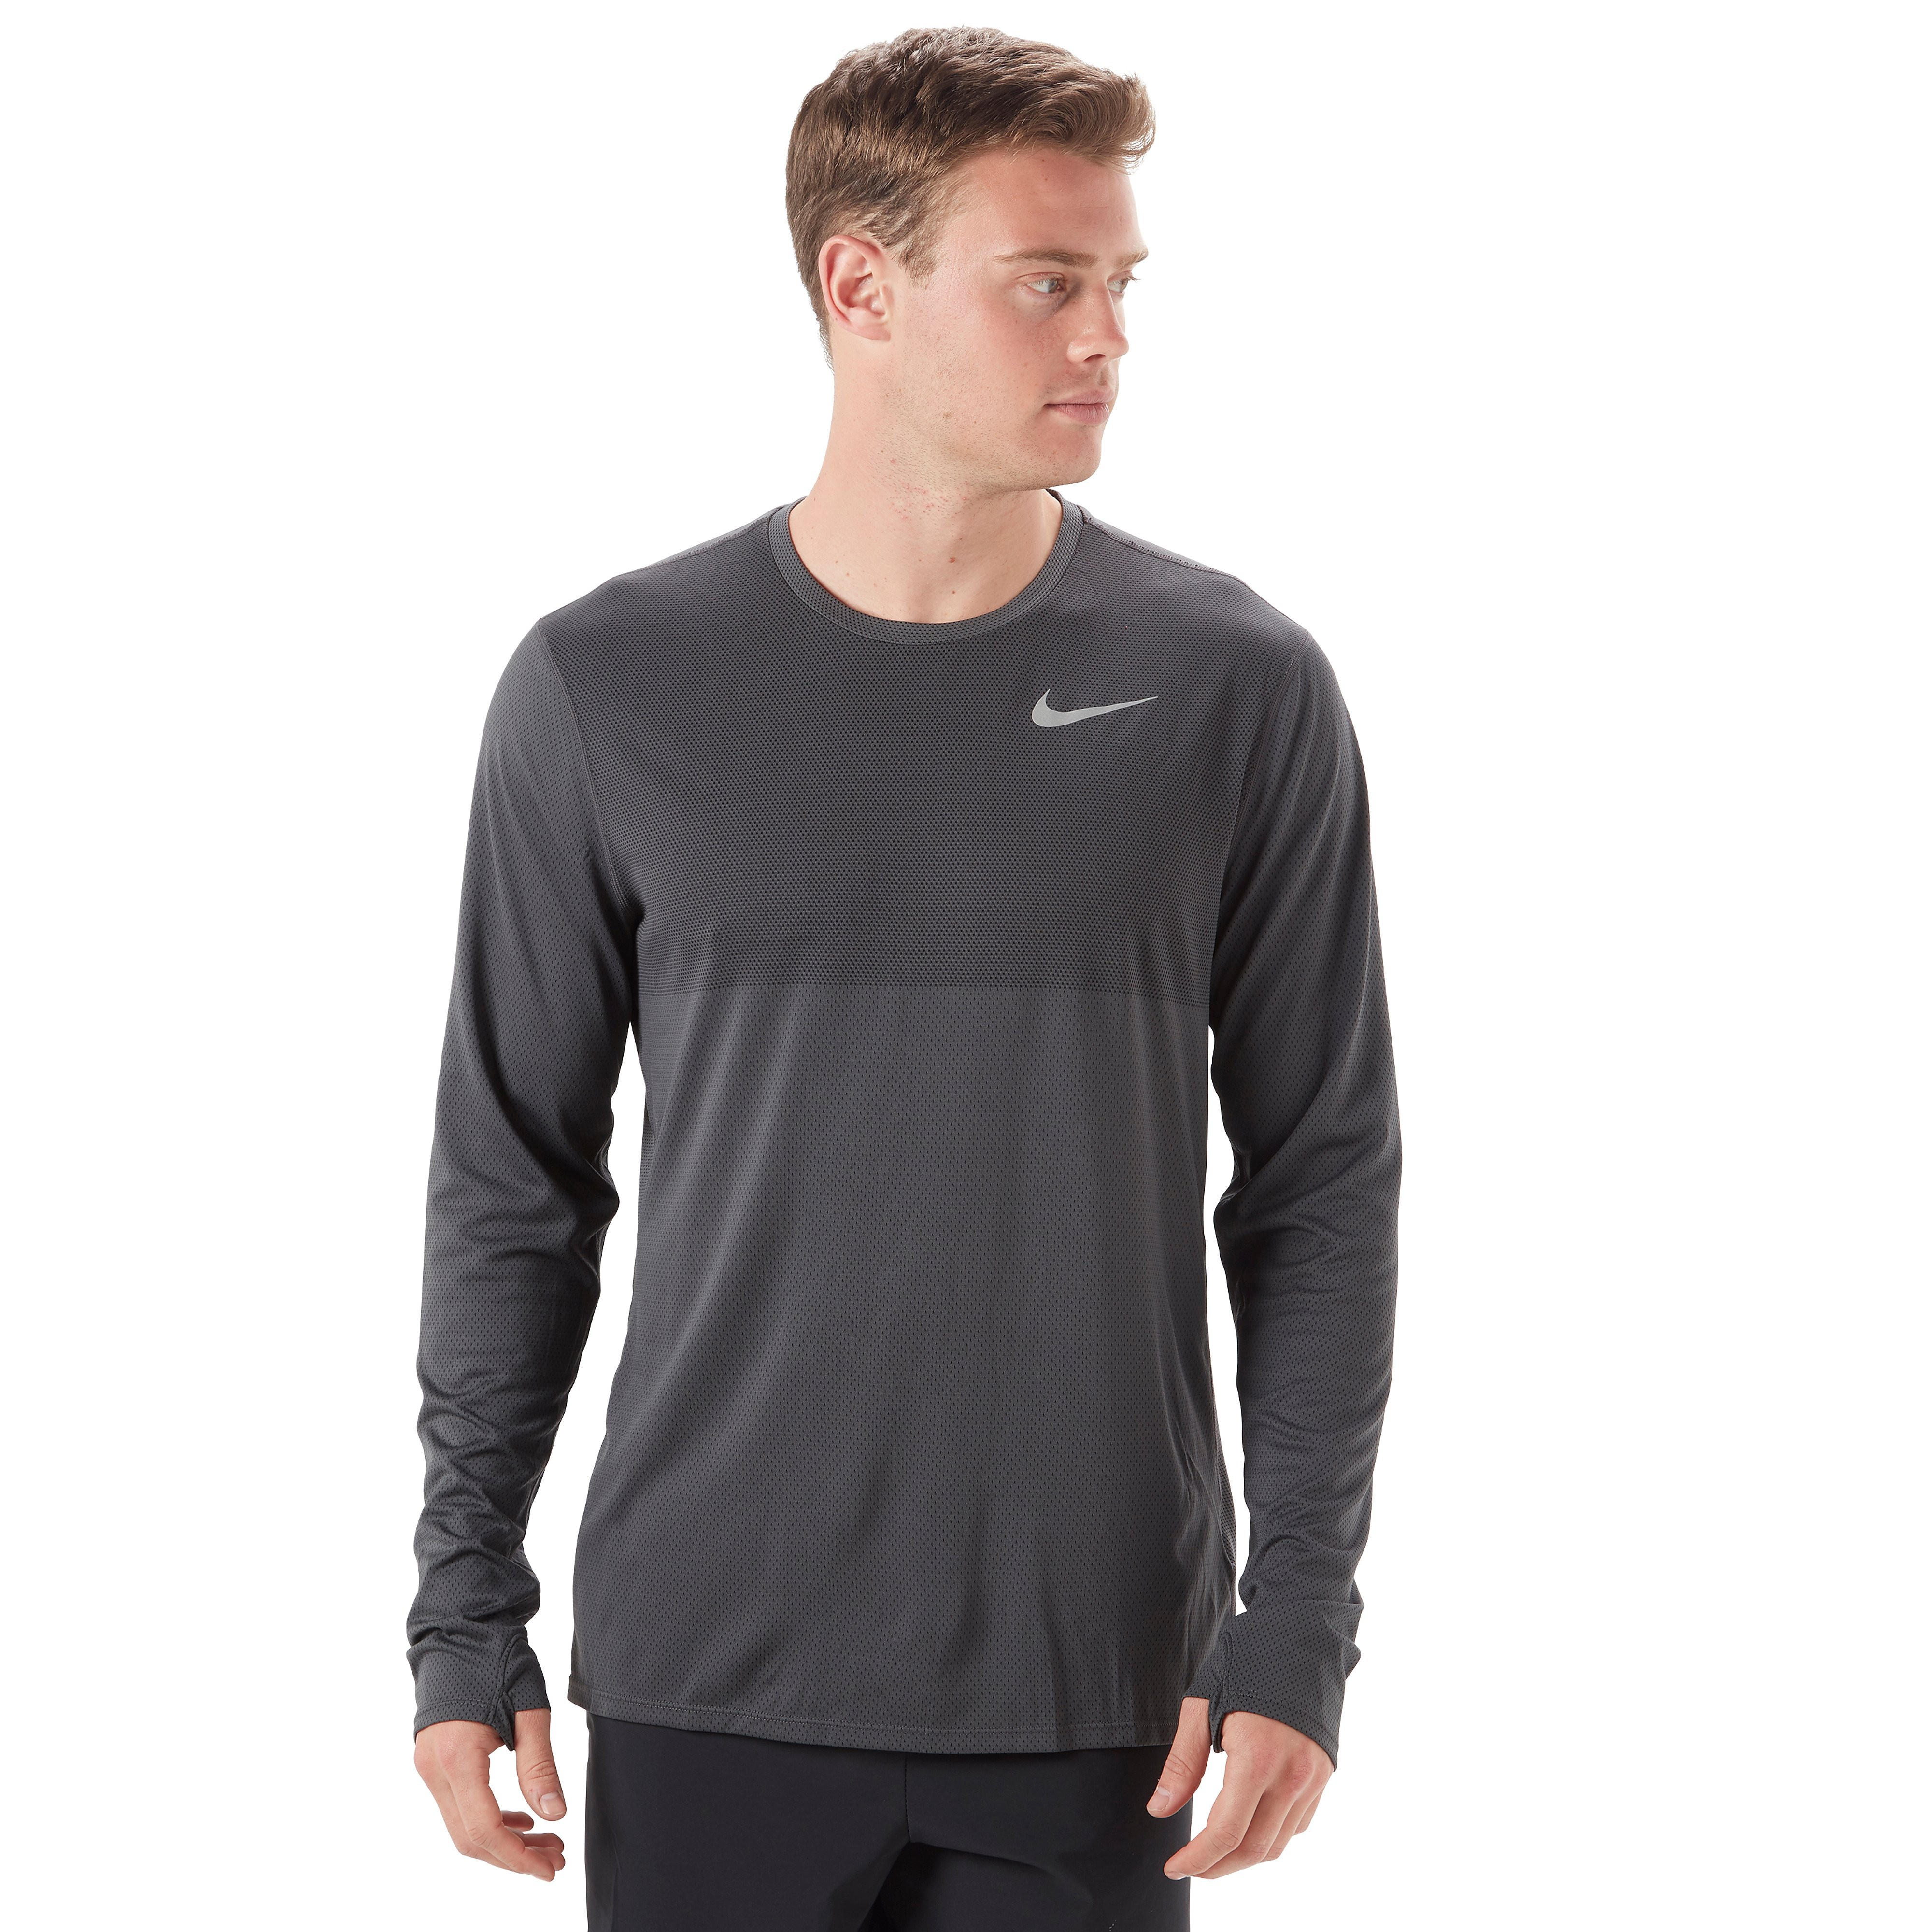 Nike Zonal Cooling Relay Long-Sleeve Men's Running Top